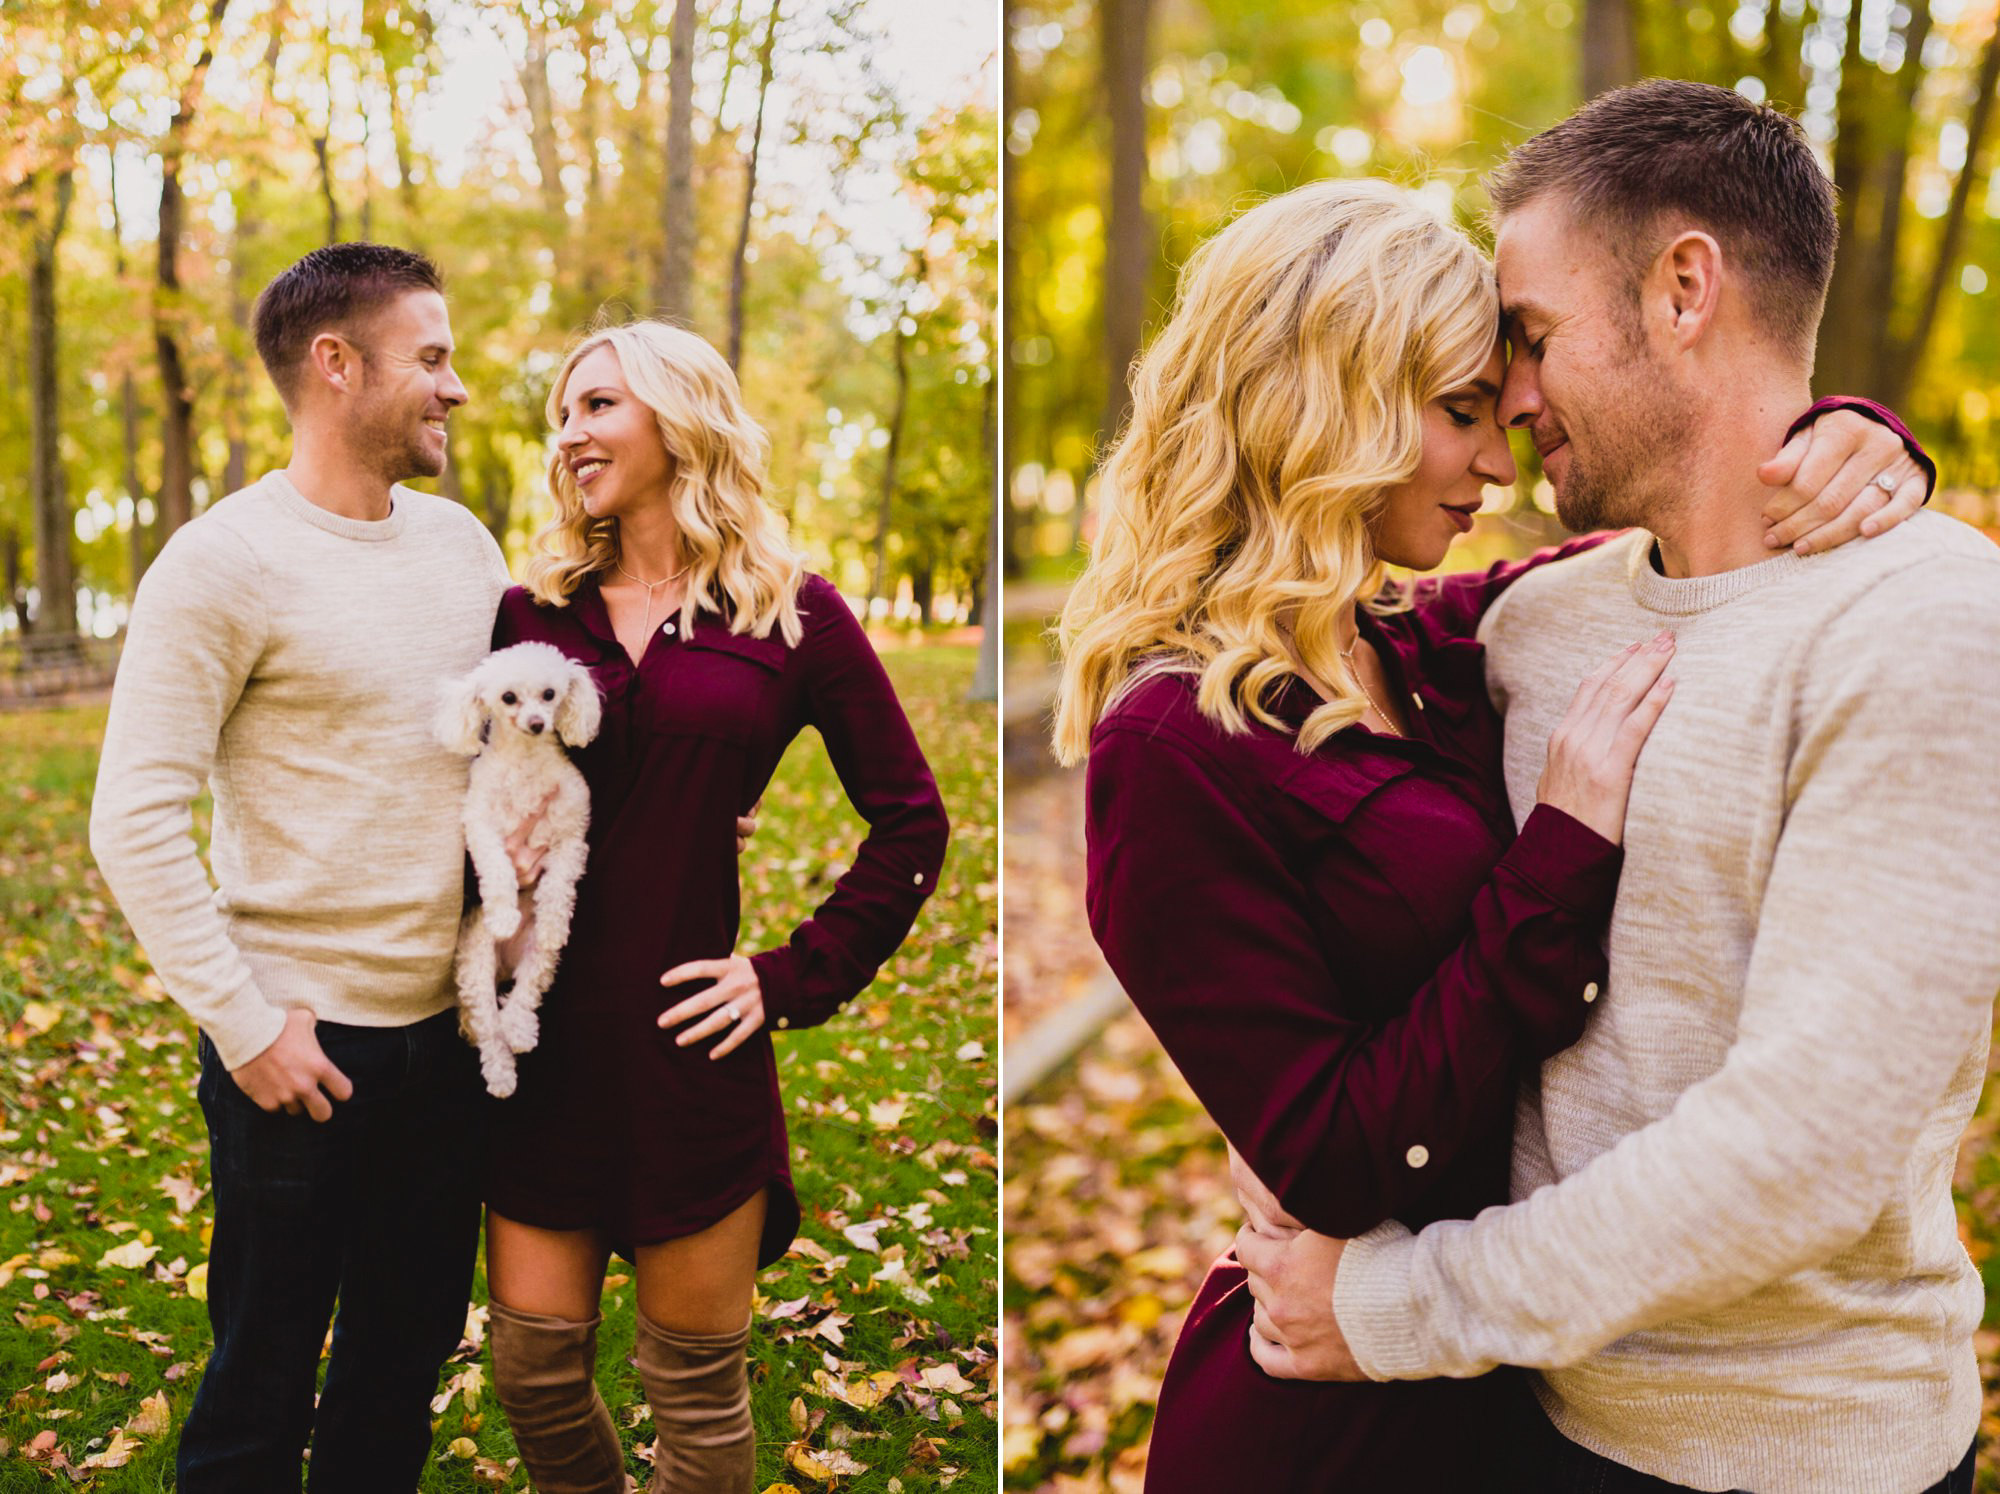 engagement-photography-88-love-stories-1.jpg